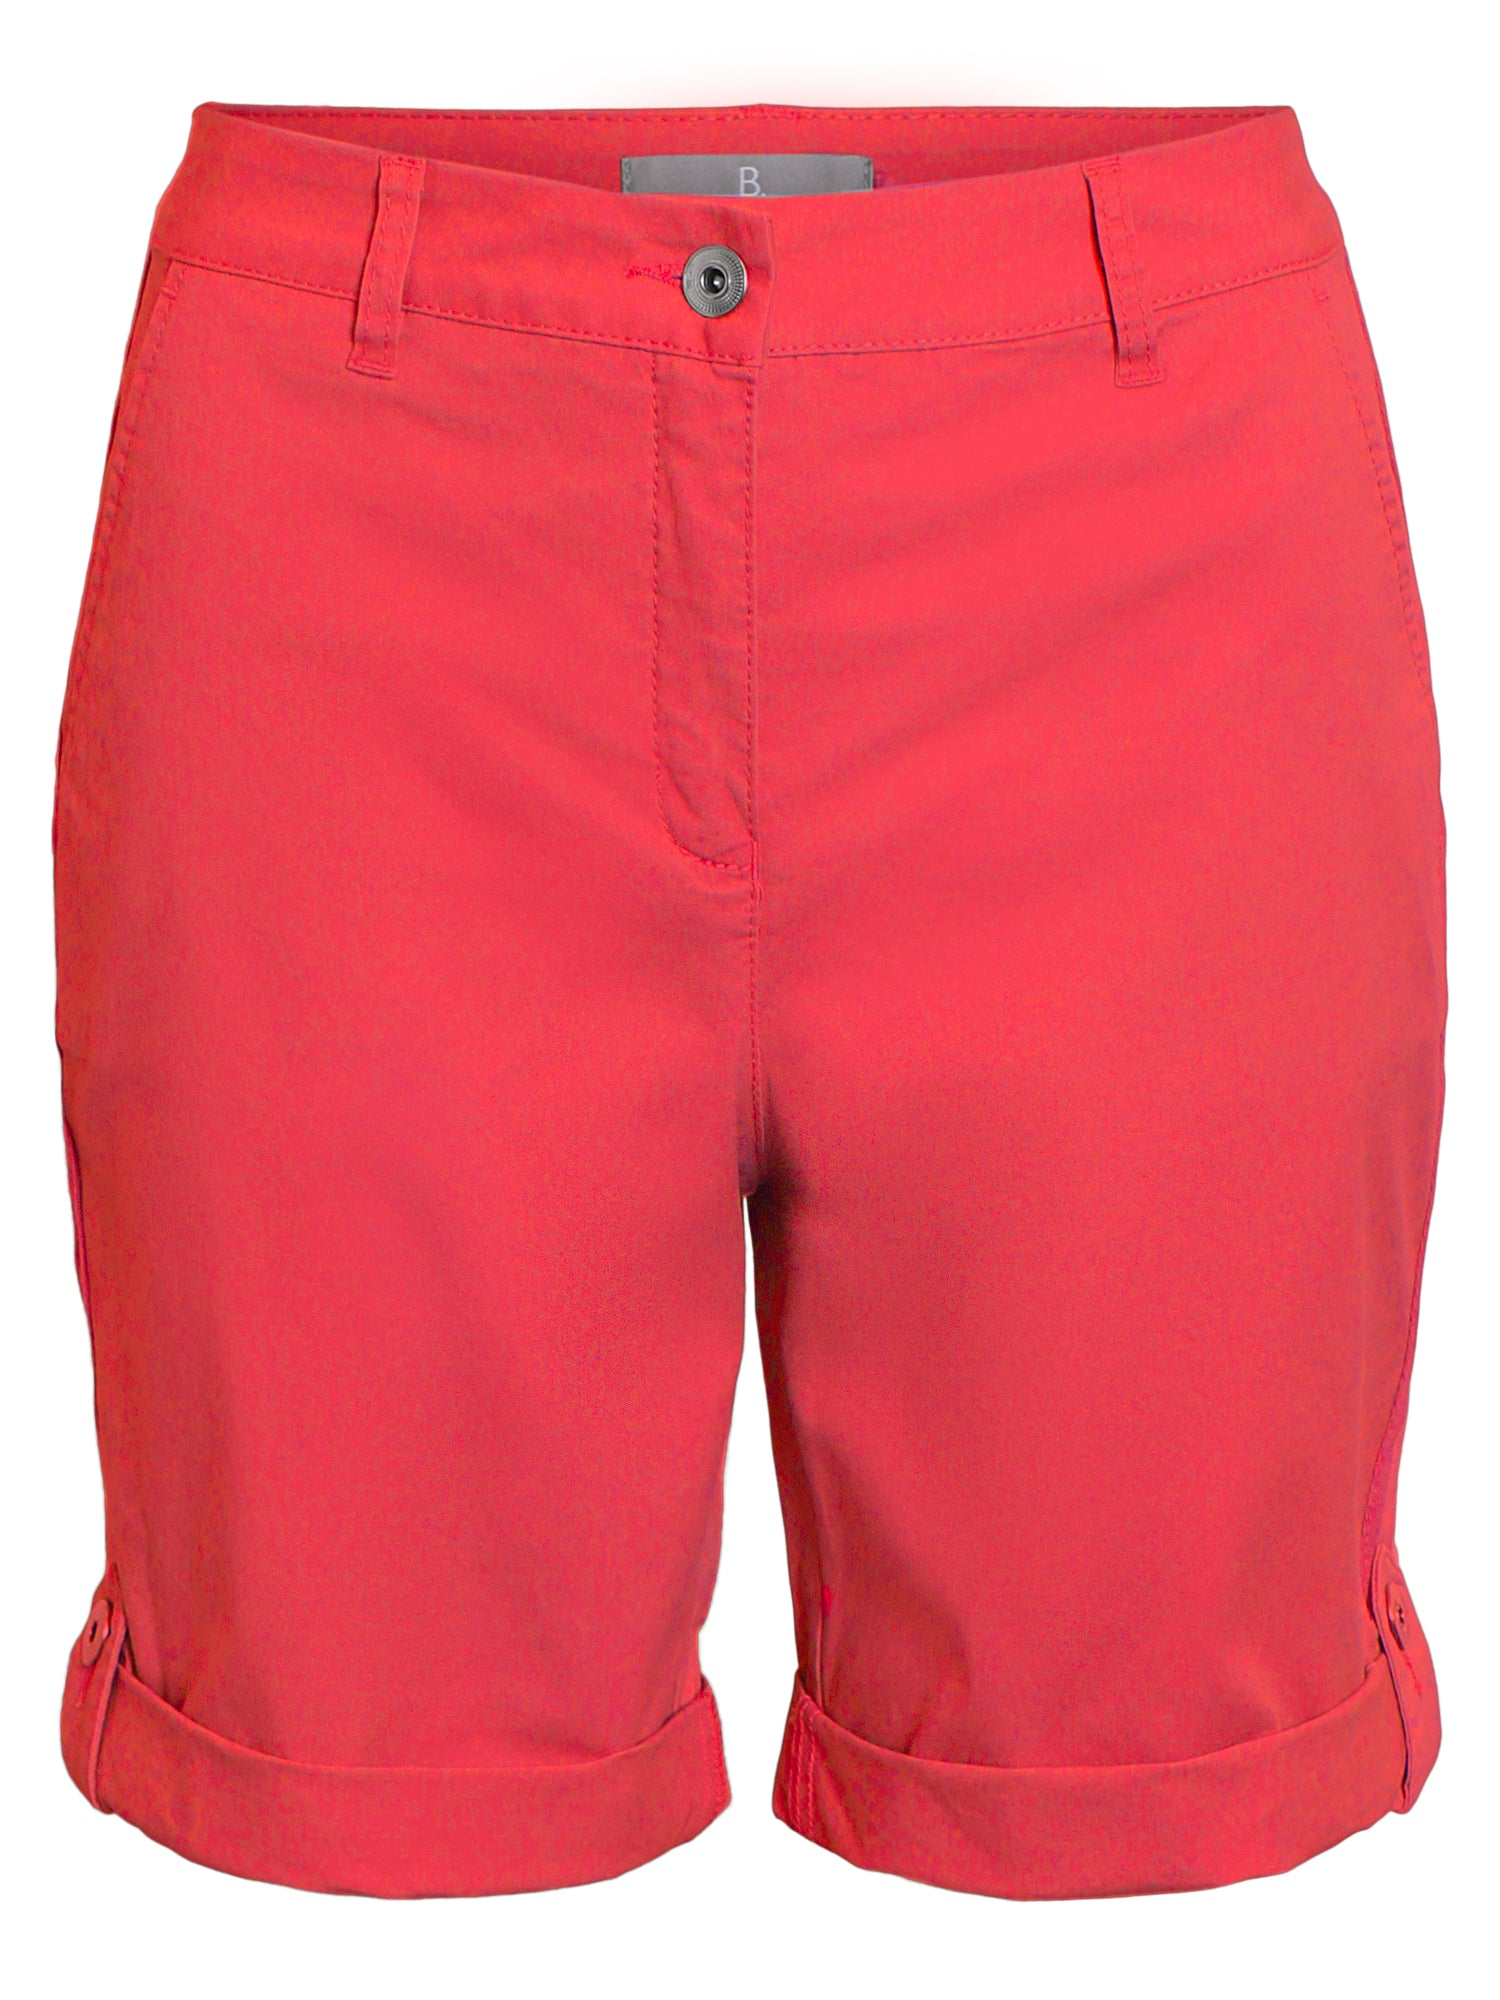 Image of   Casual shorts - Rouge Red